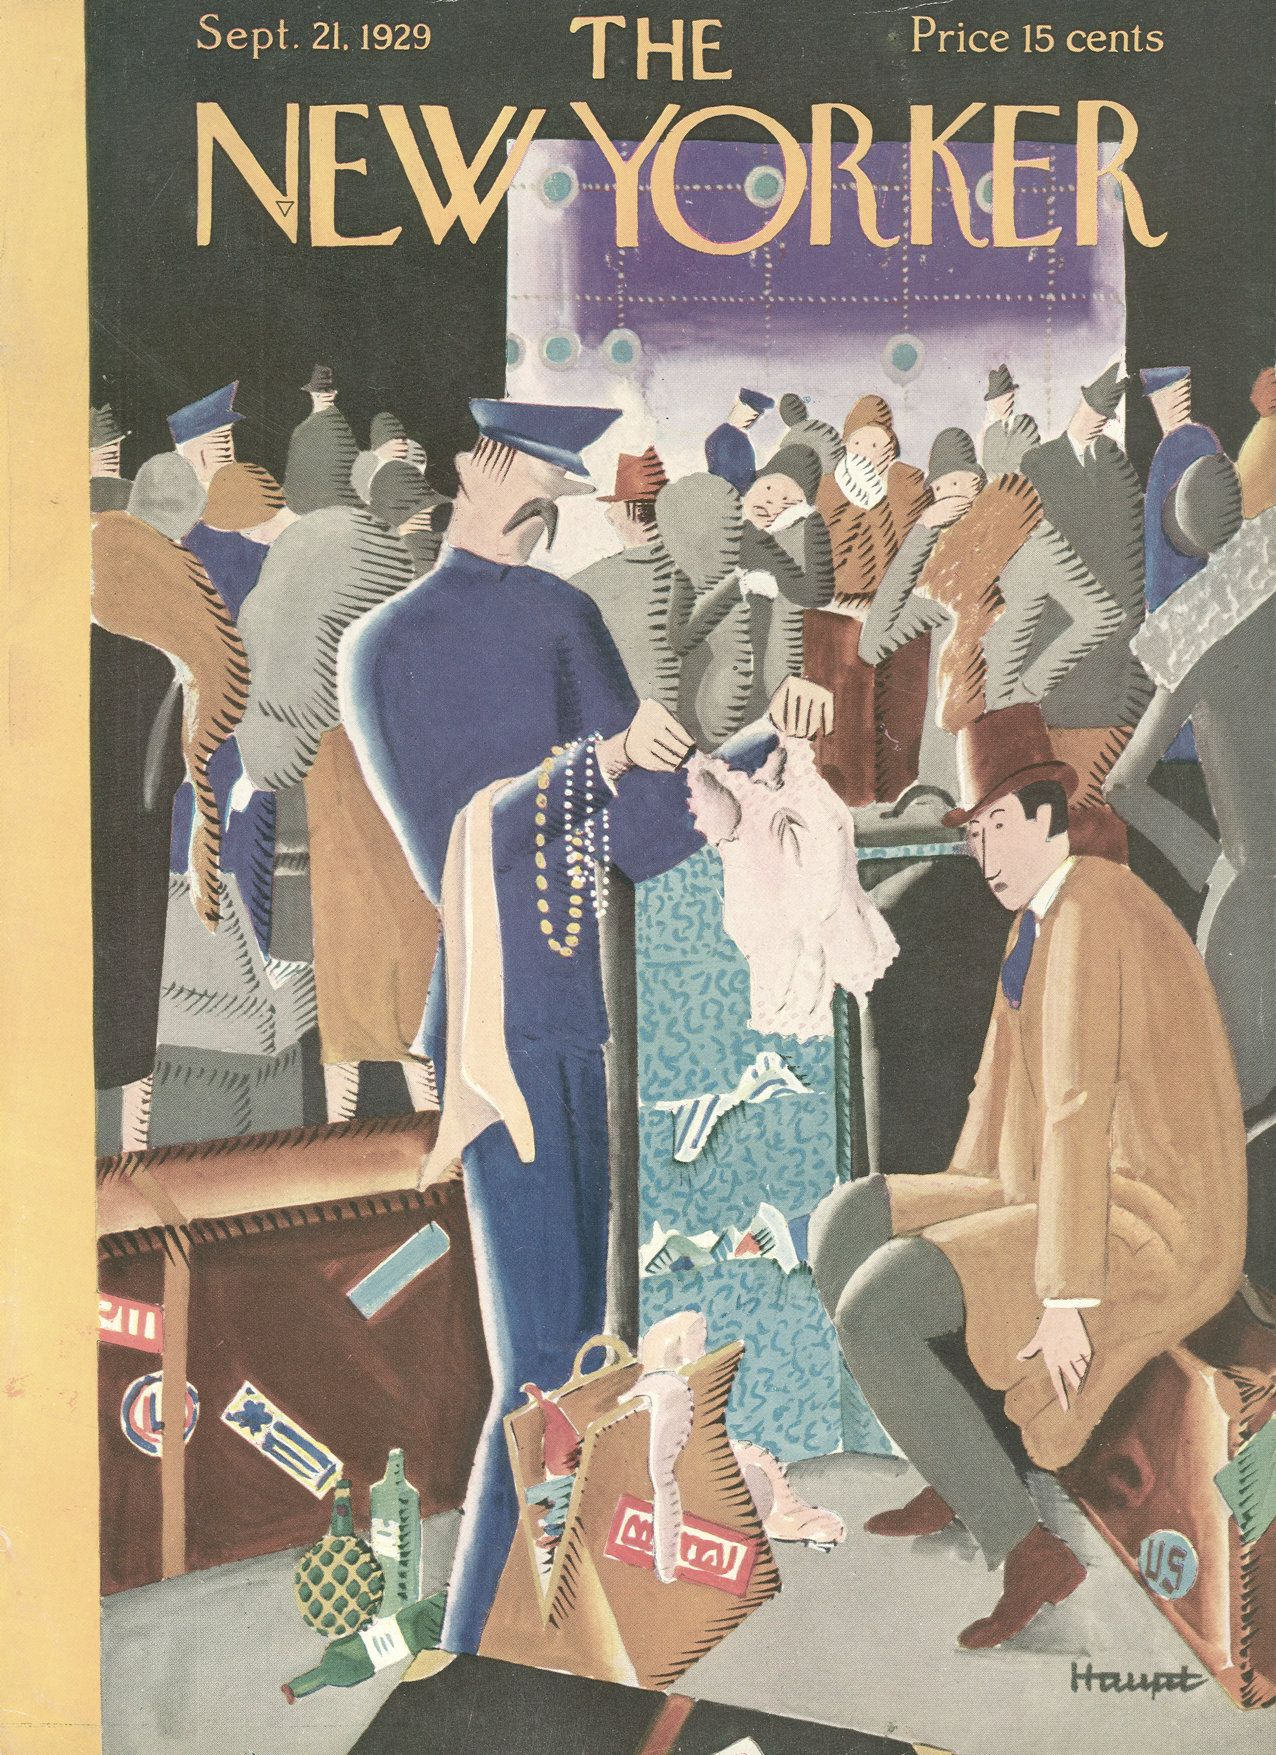 The New Yorker - Saturday, September 21, 1929 - Issue # 240 - Vol. 5 - N° 31 - Cover by : Theodore G. Haupt